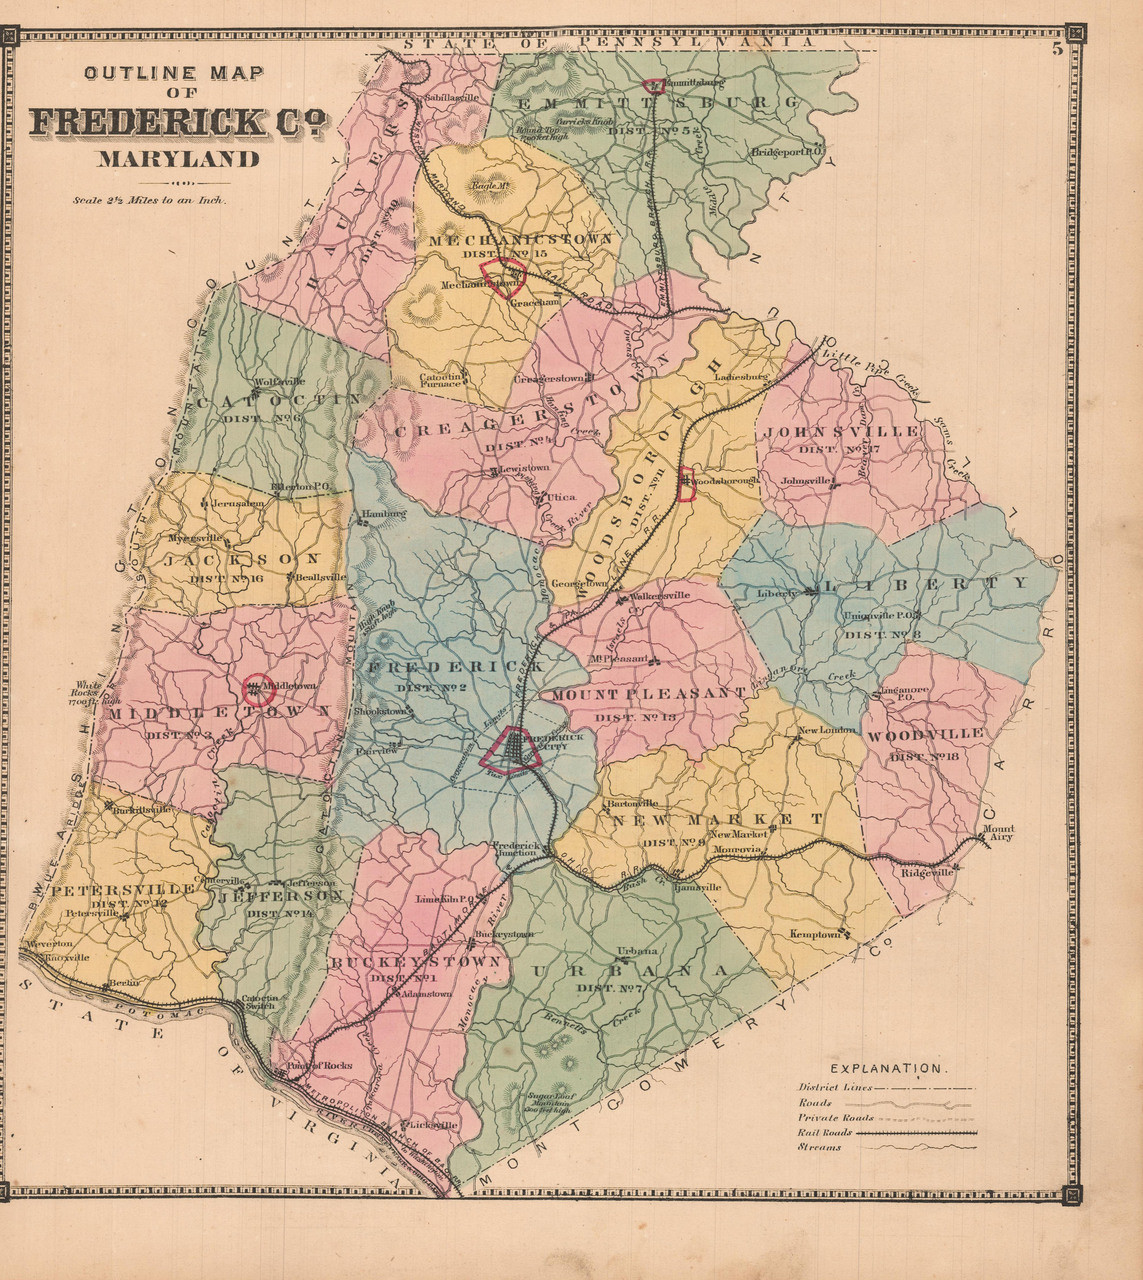 map of frederick county maryland Frederick County Maryland Antique Map Lake 1873 Pine Brook map of frederick county maryland